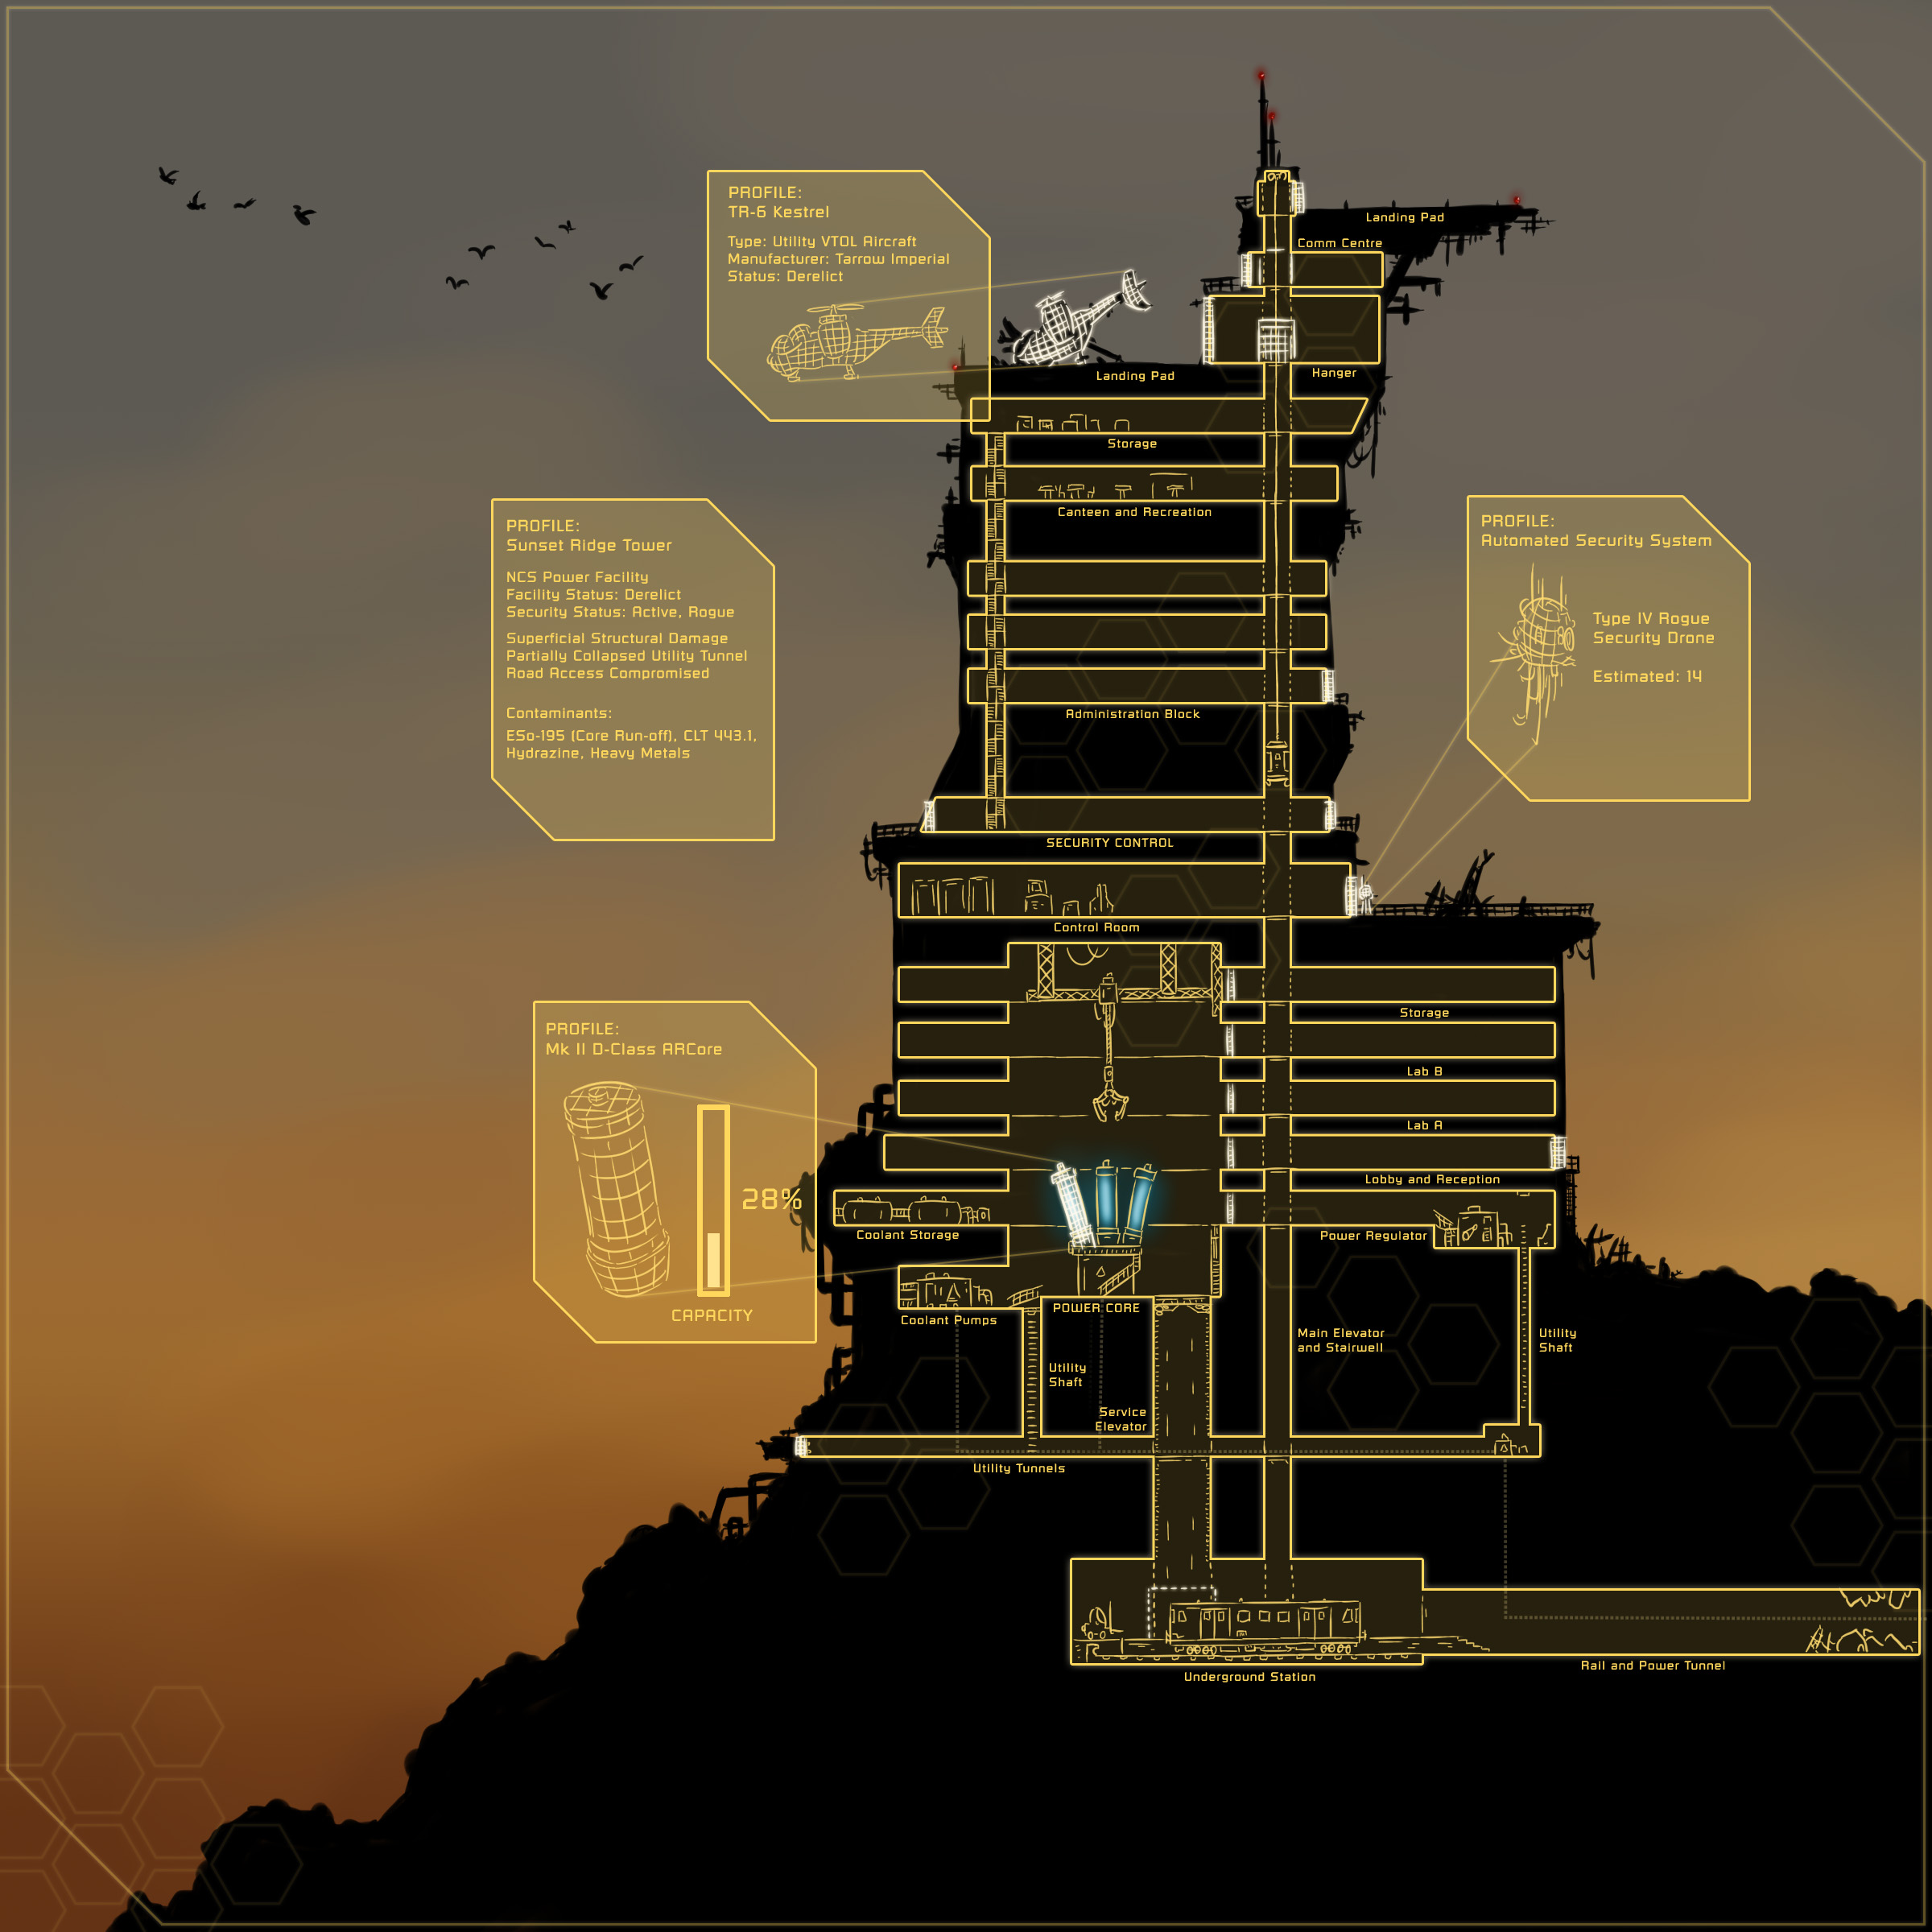 sunsettower